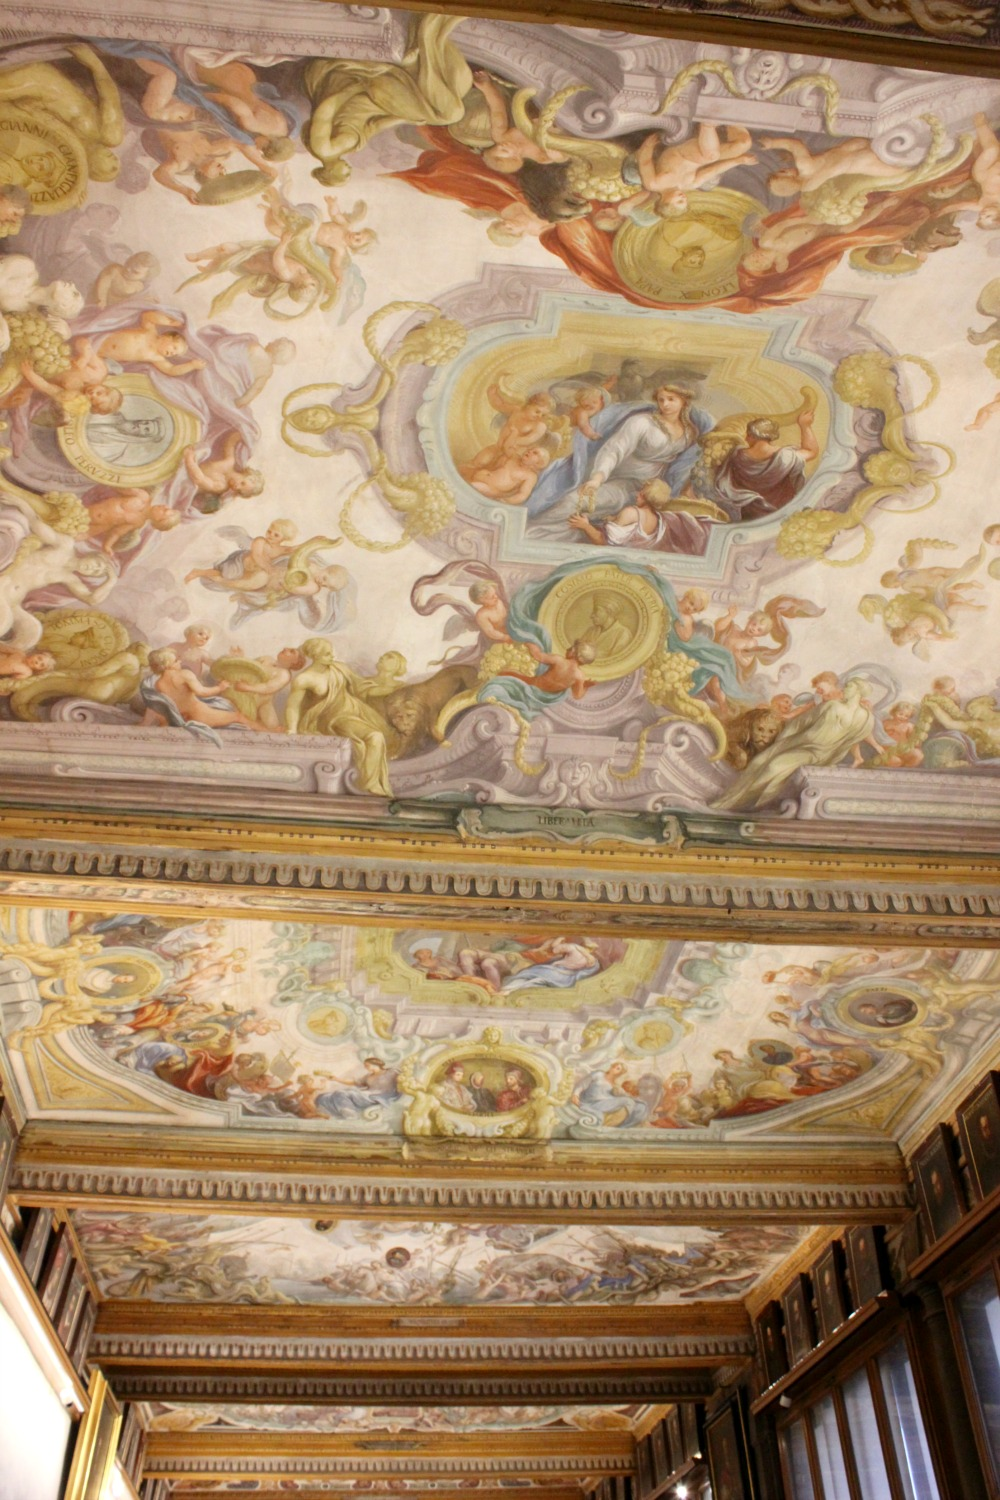 Decorative ceiling in the Uffizi gallery in Florence, Italy - my Uffizi tour with kids and gelato making day in Florence